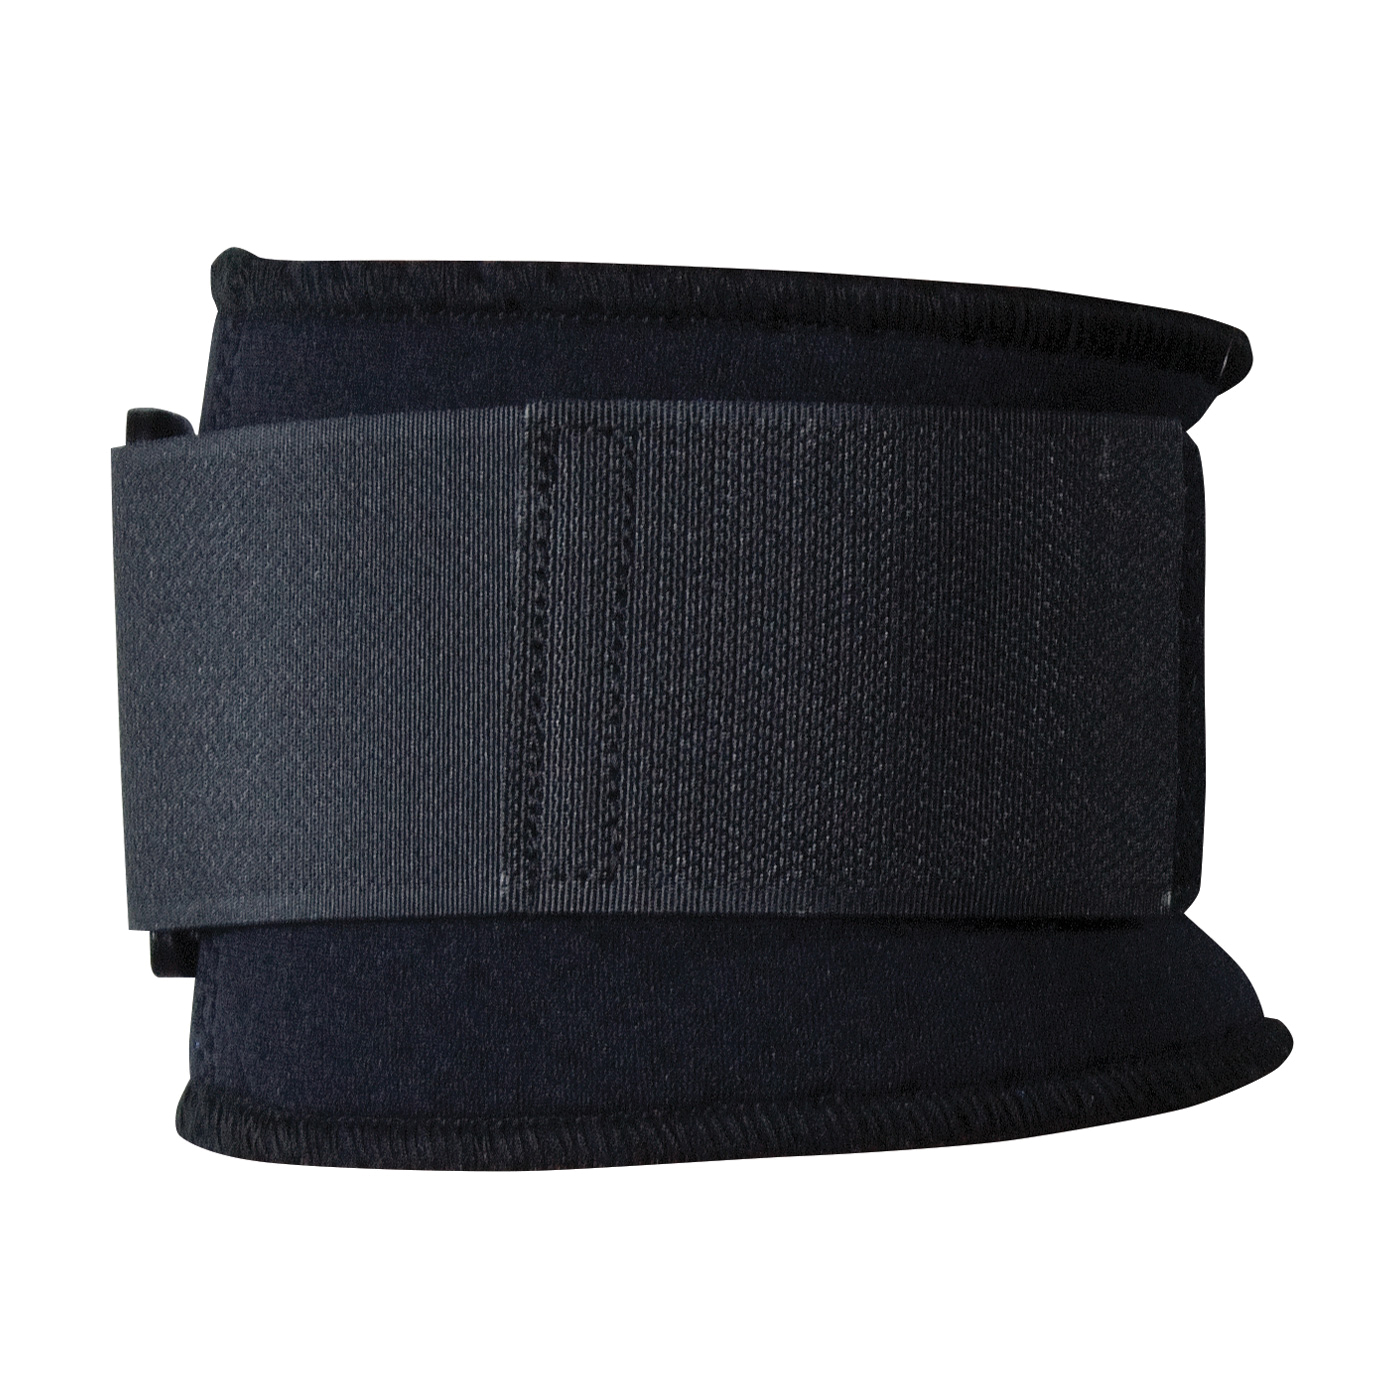 PIP® 290-9000L Ambidextrous Elbow Support Wrap, L, Terry Lined Neoprene/Nylon, Black, Hook and Loop Closure